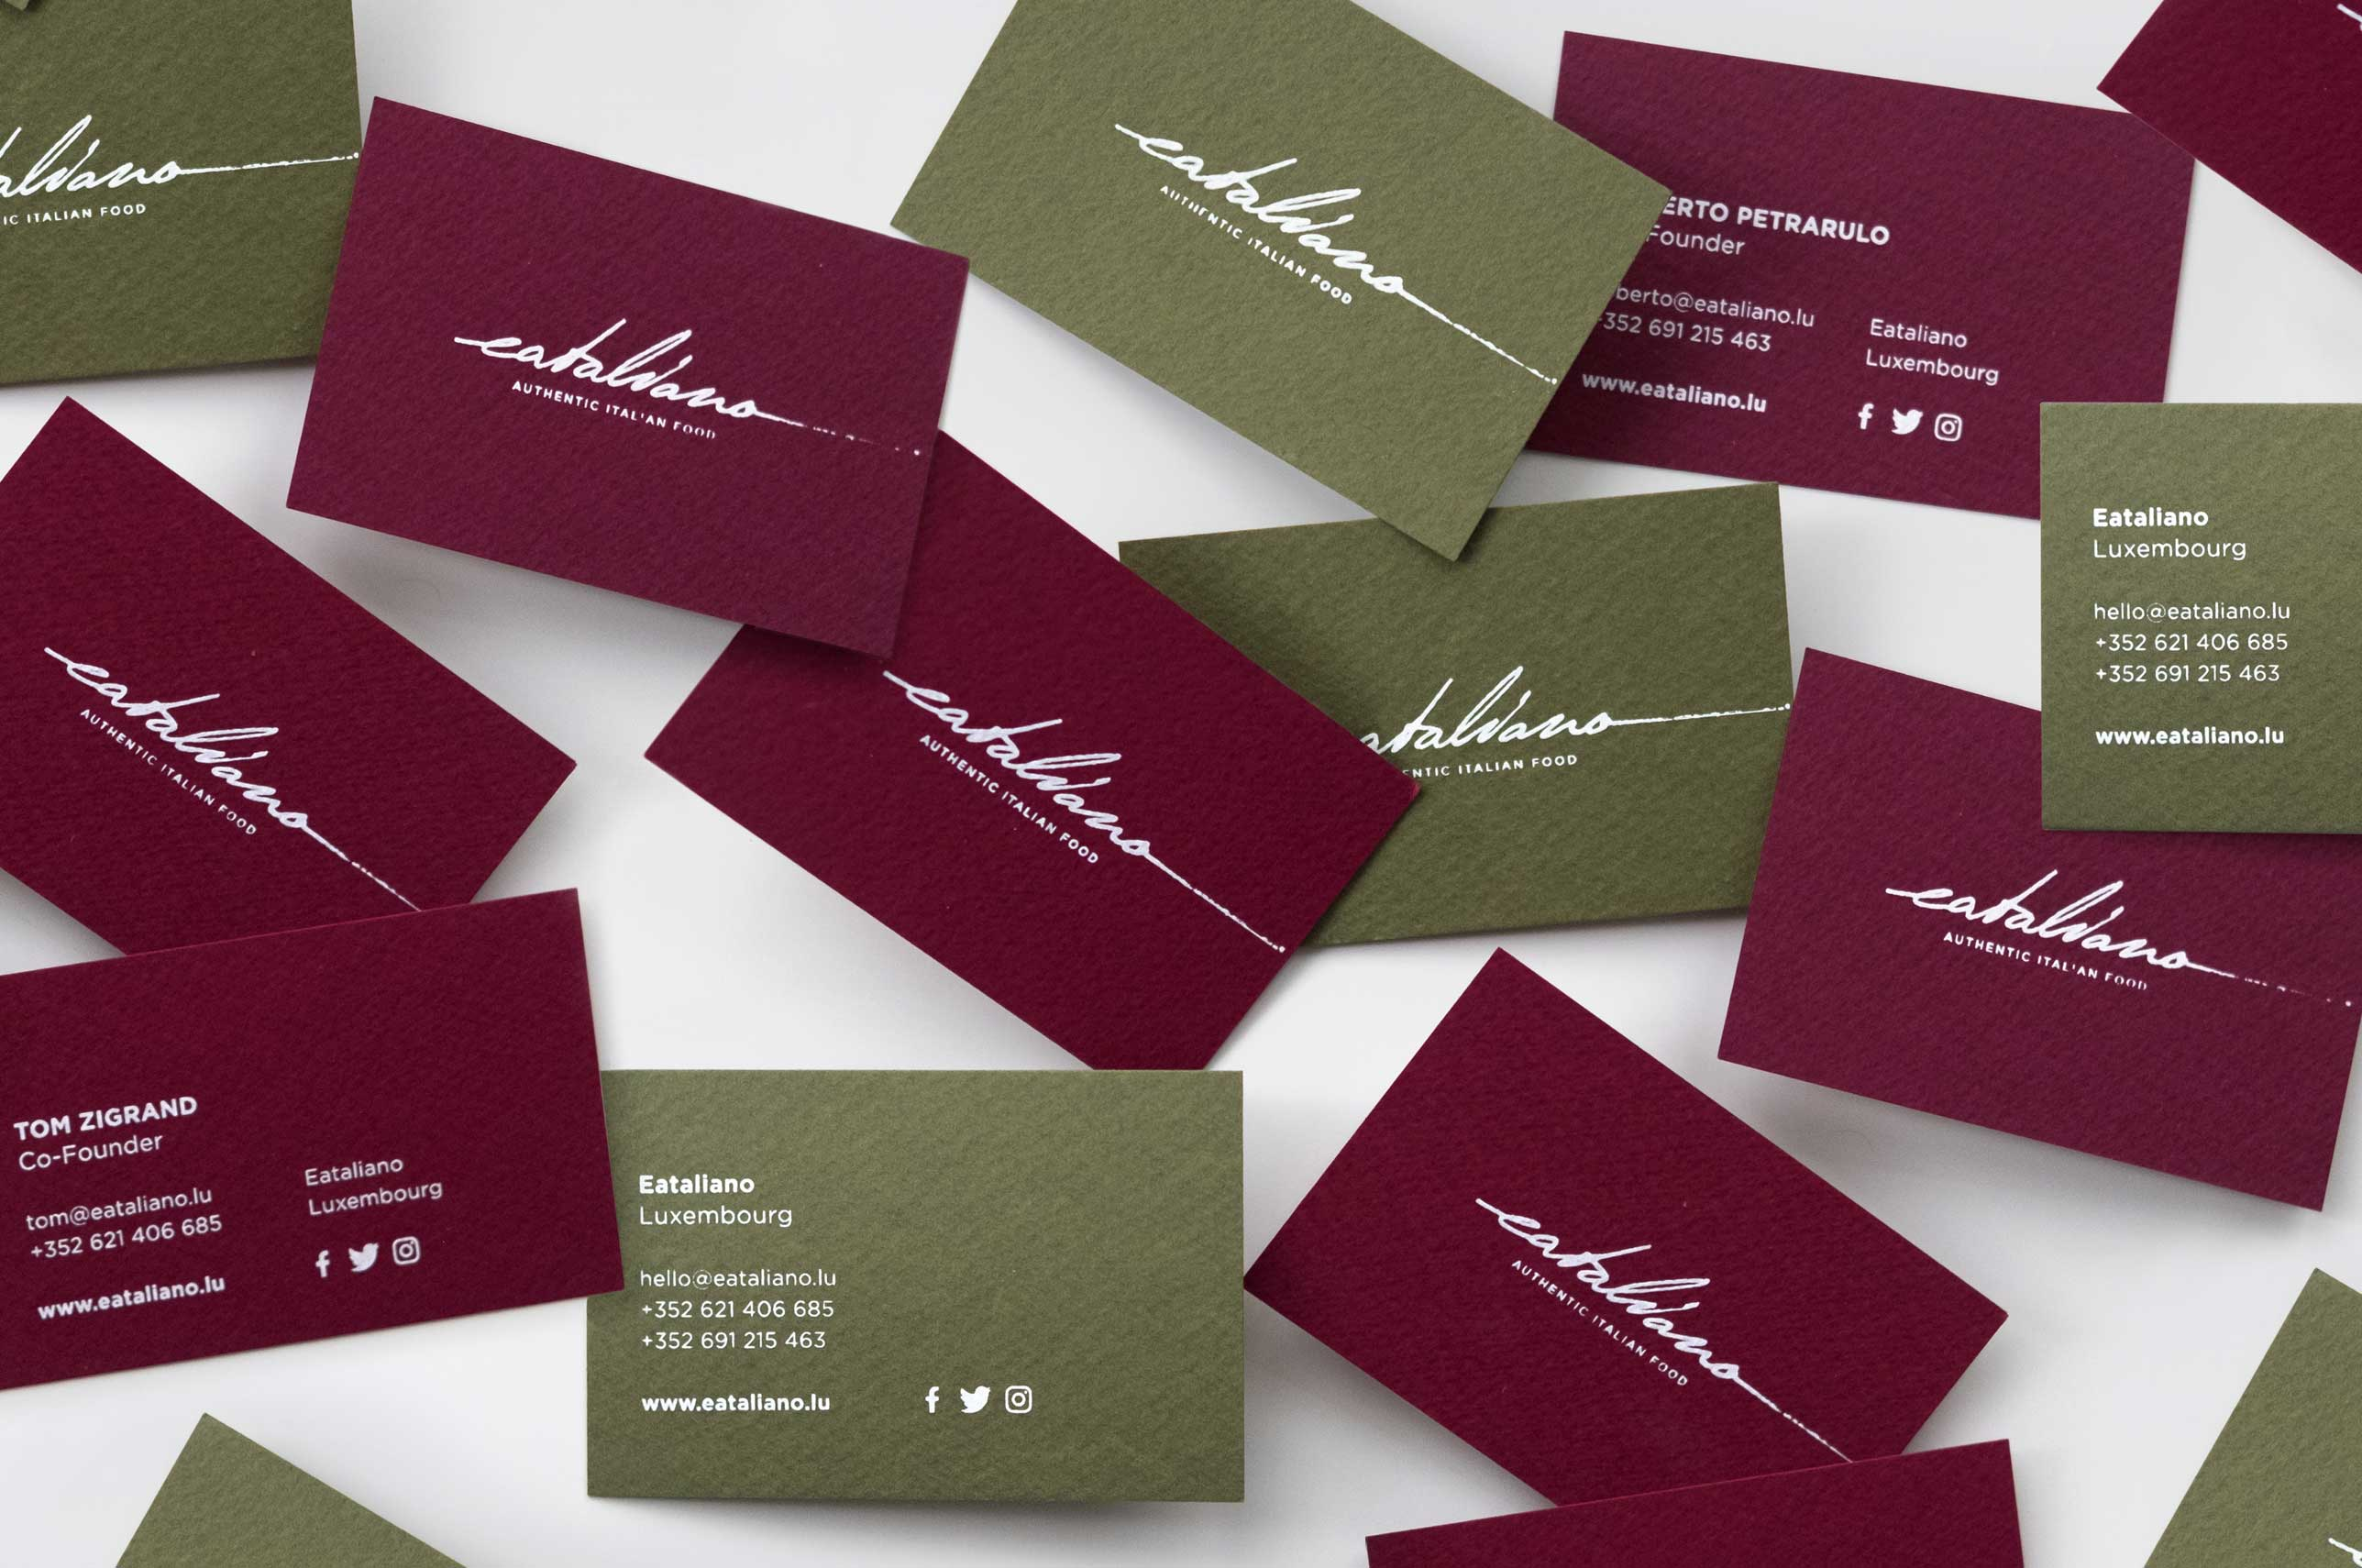 Eataliano Business Cards